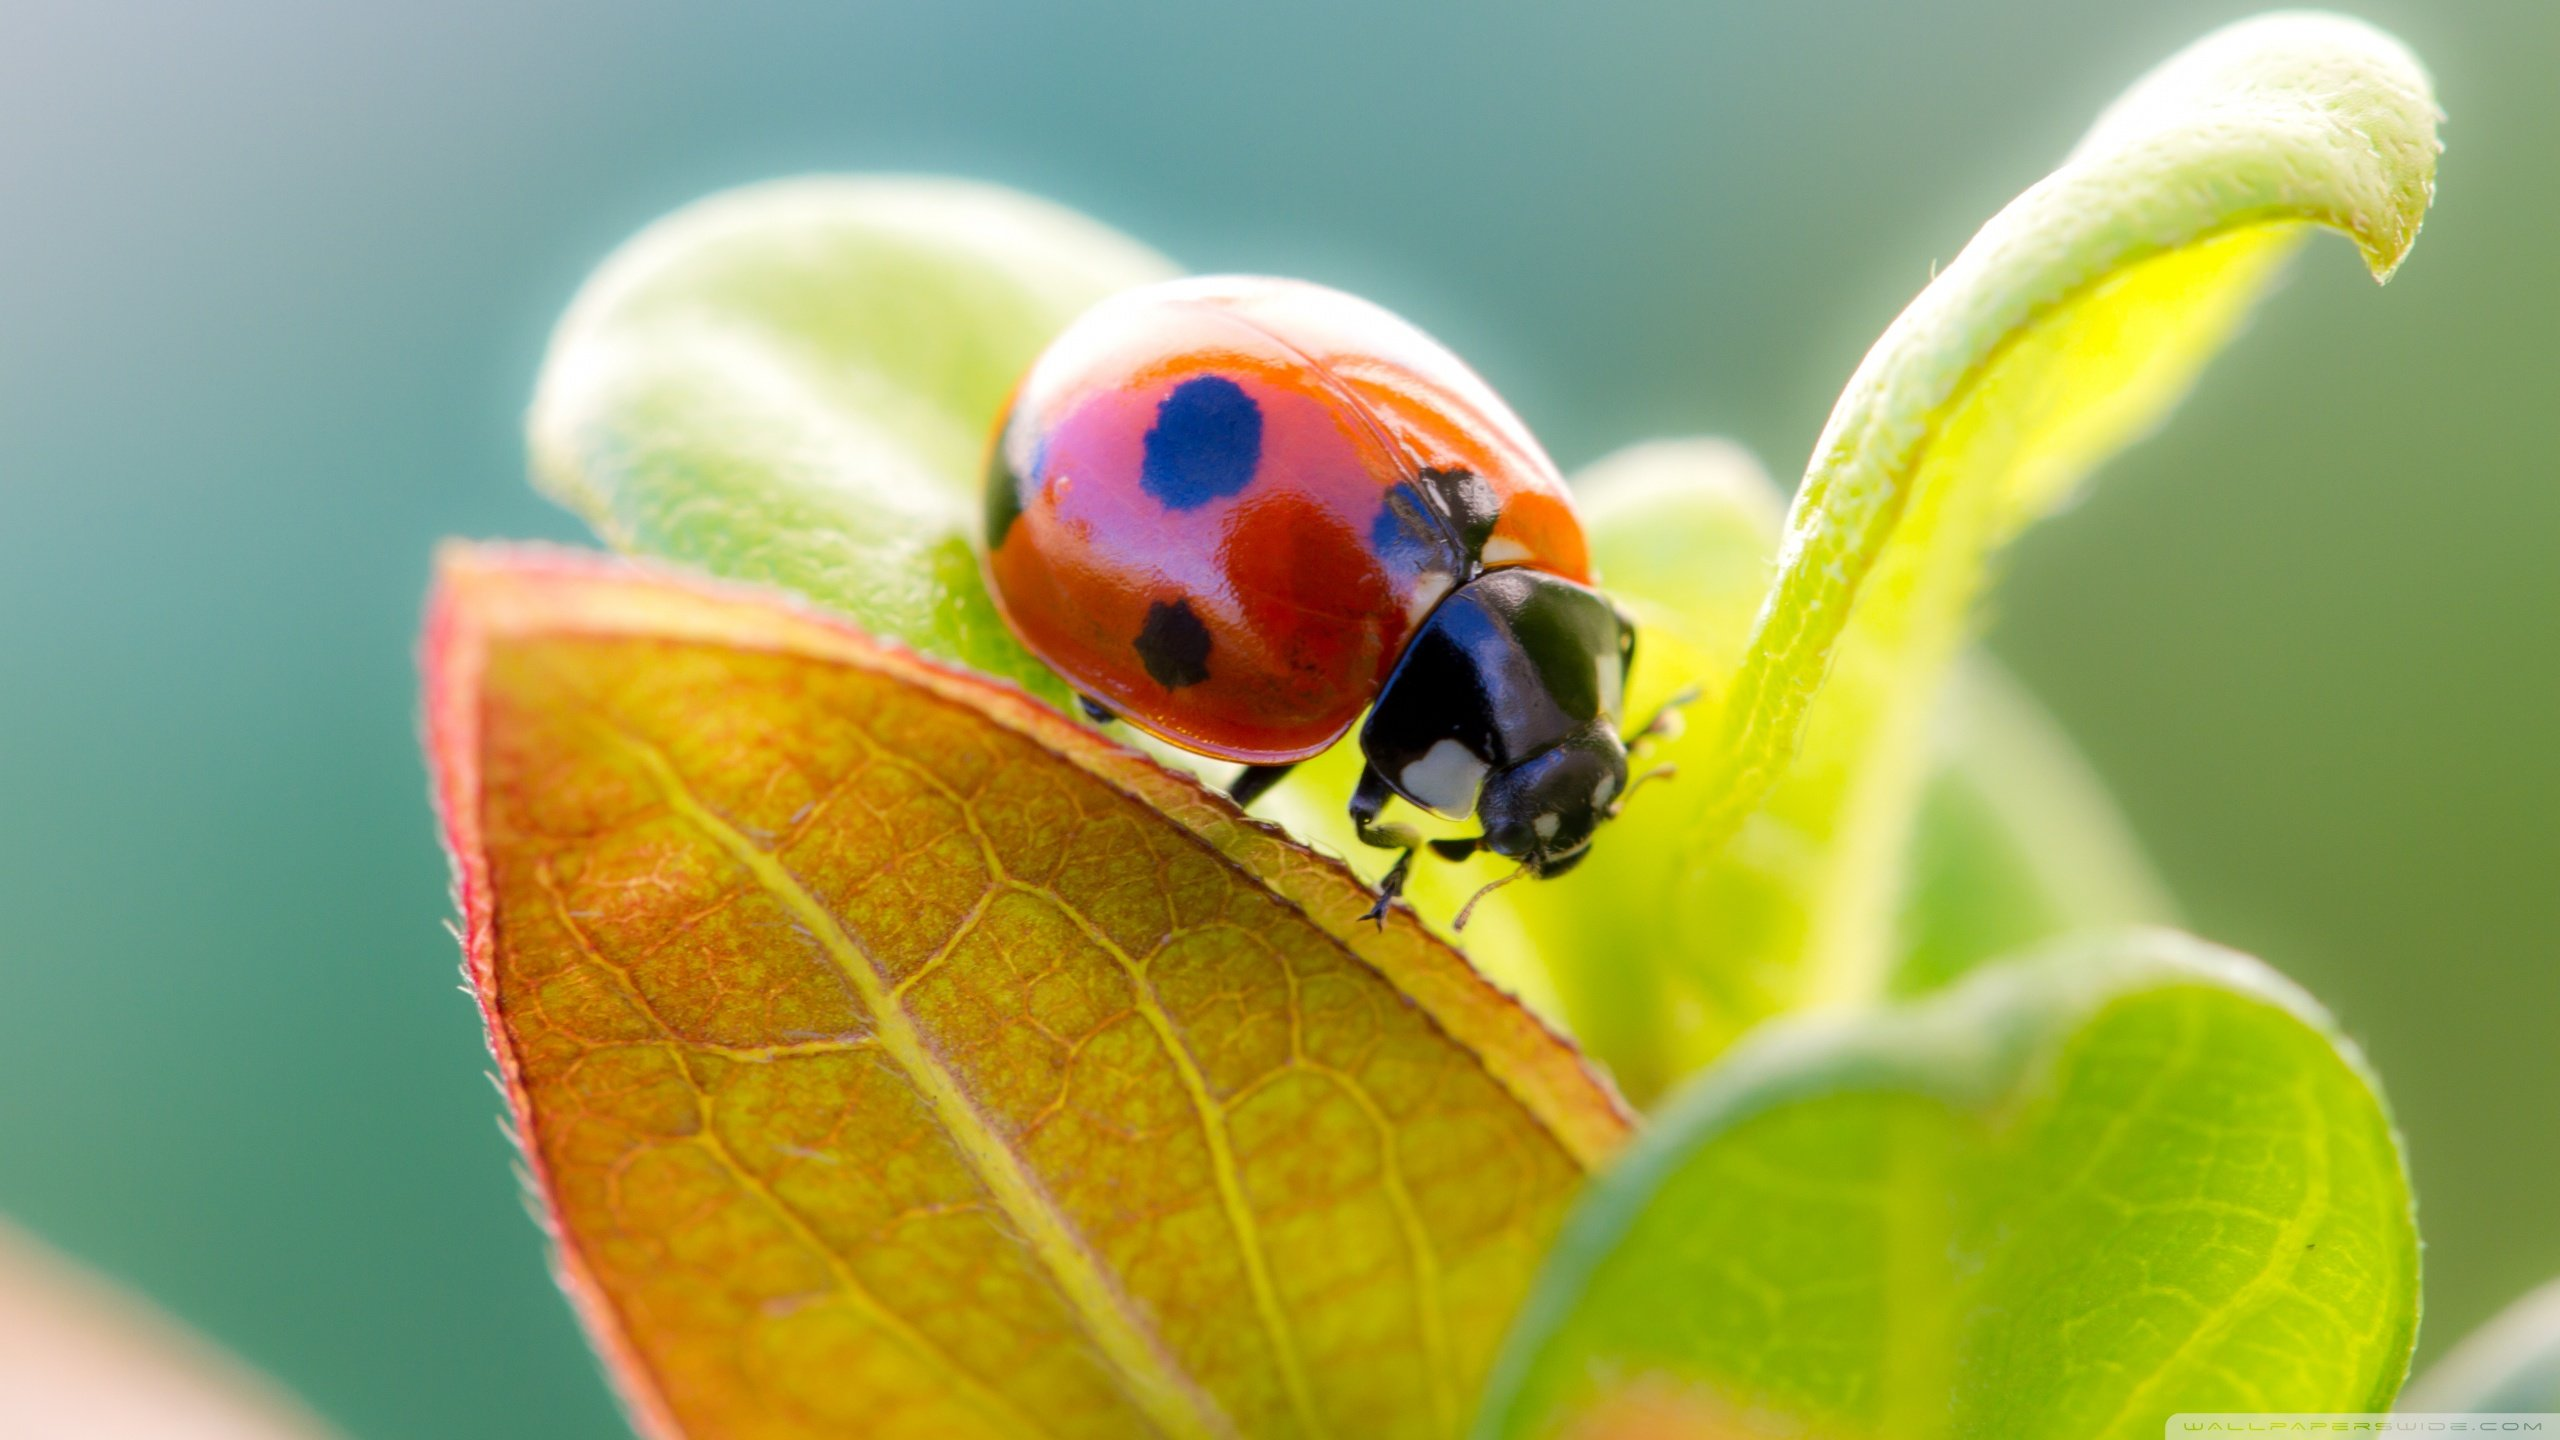 Free Ladybug high quality wallpaper ID:270428 for hd 2560x1440 desktop